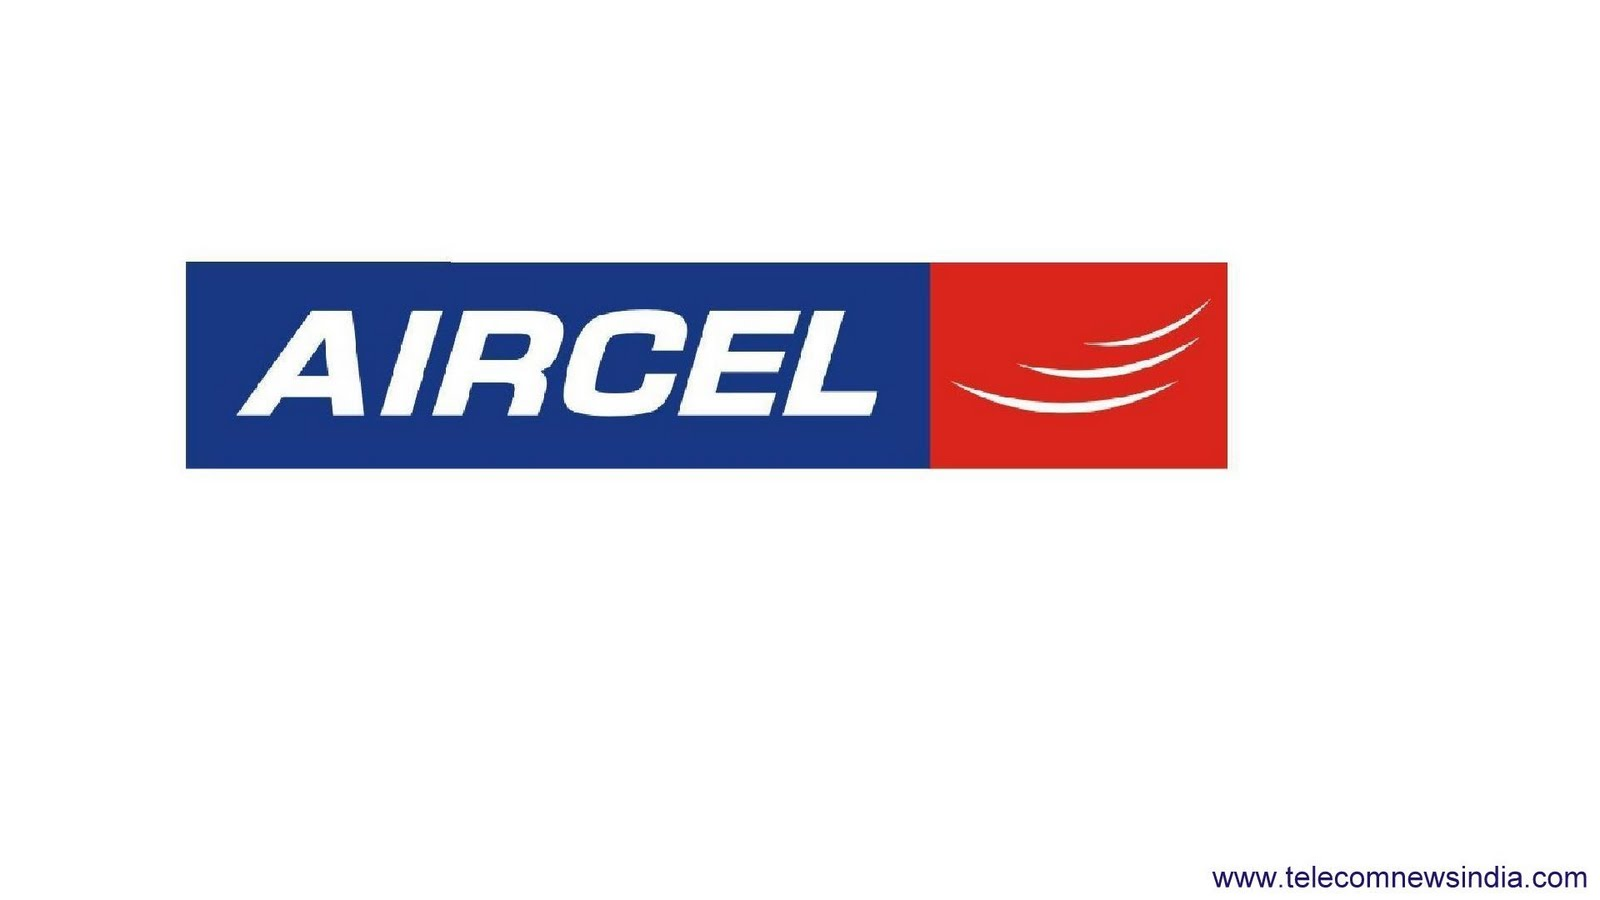 Uninor Logo Wallpapers To download Aircel wallpaper